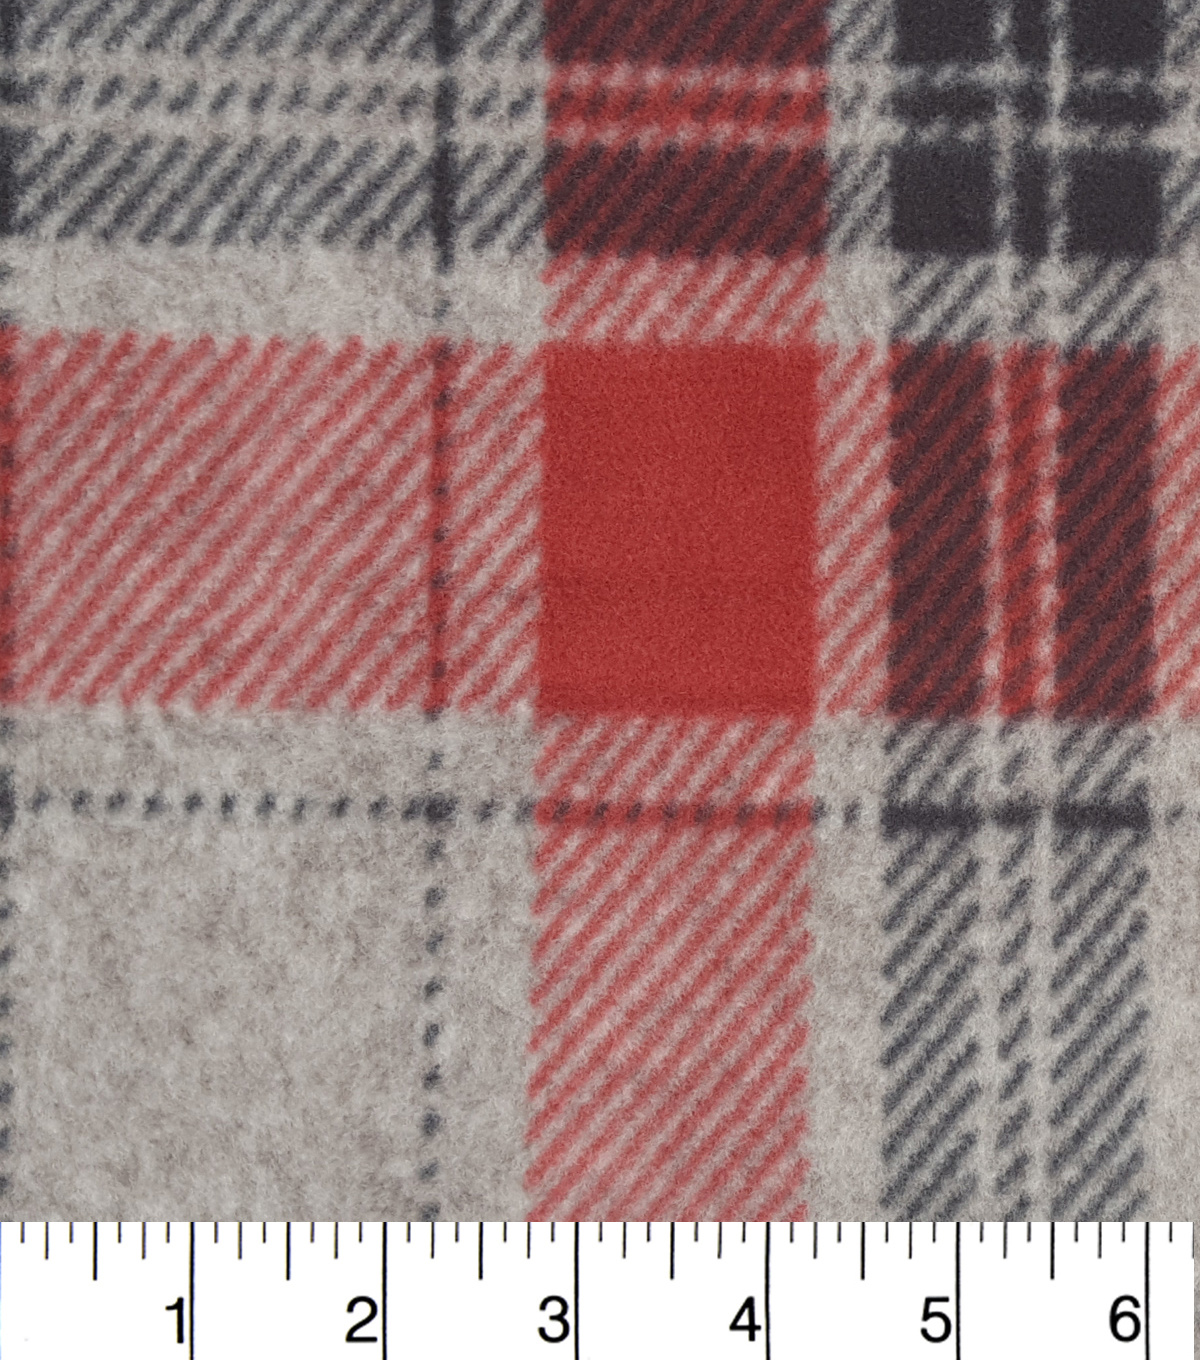 Specialty Fleece Fabric 59''-Red Black Grey Heathered Plaid